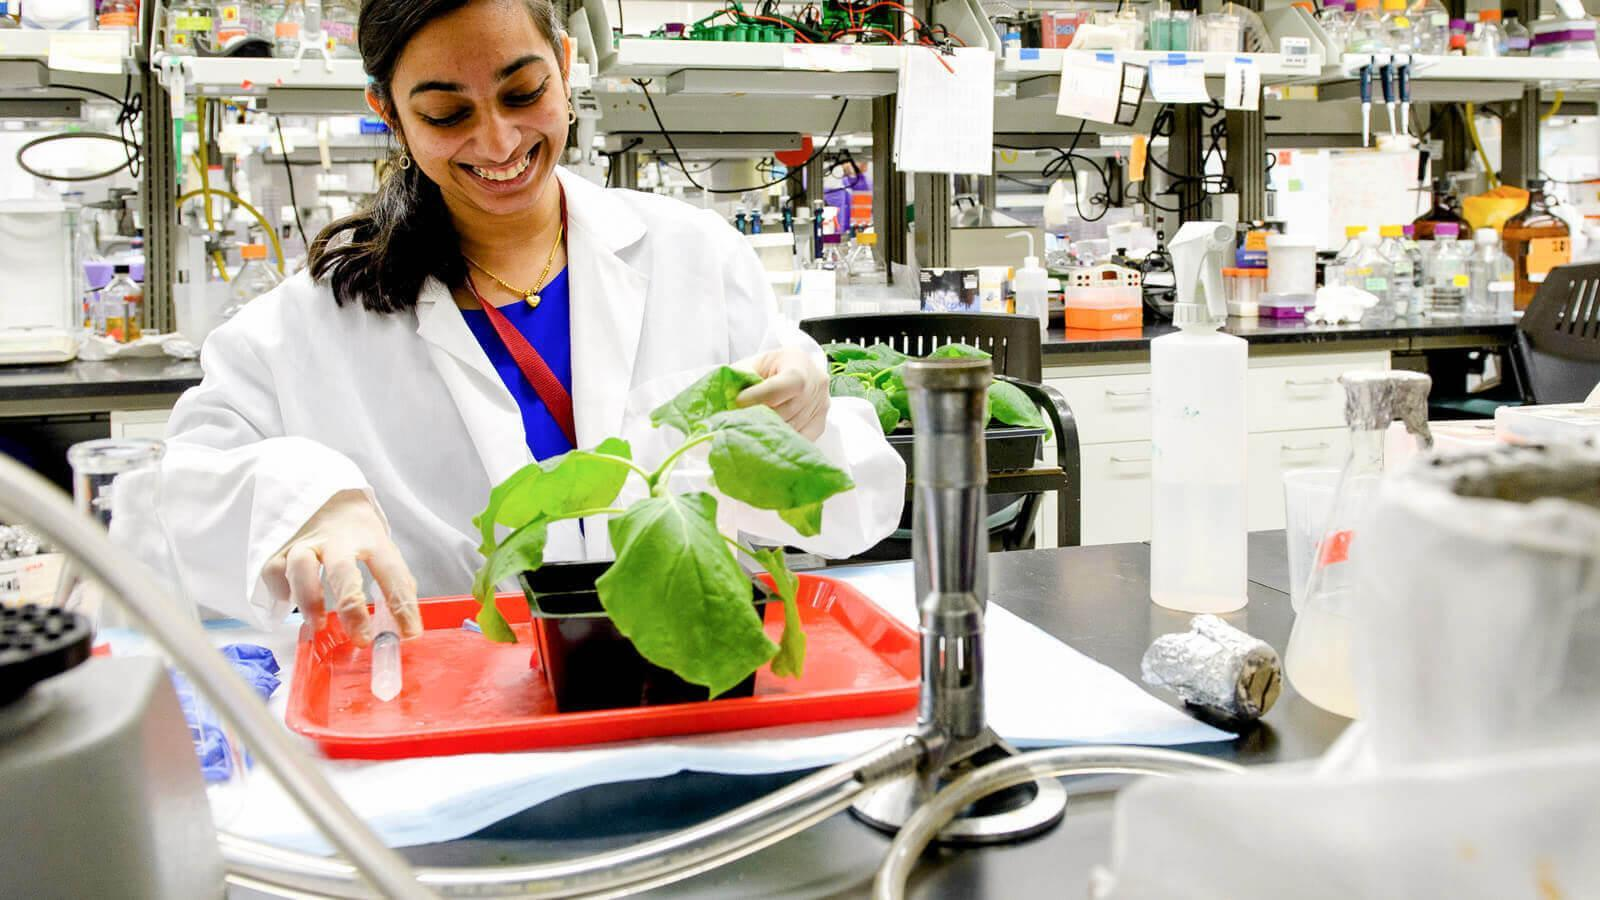 Woman in a lab coat studying a green plant